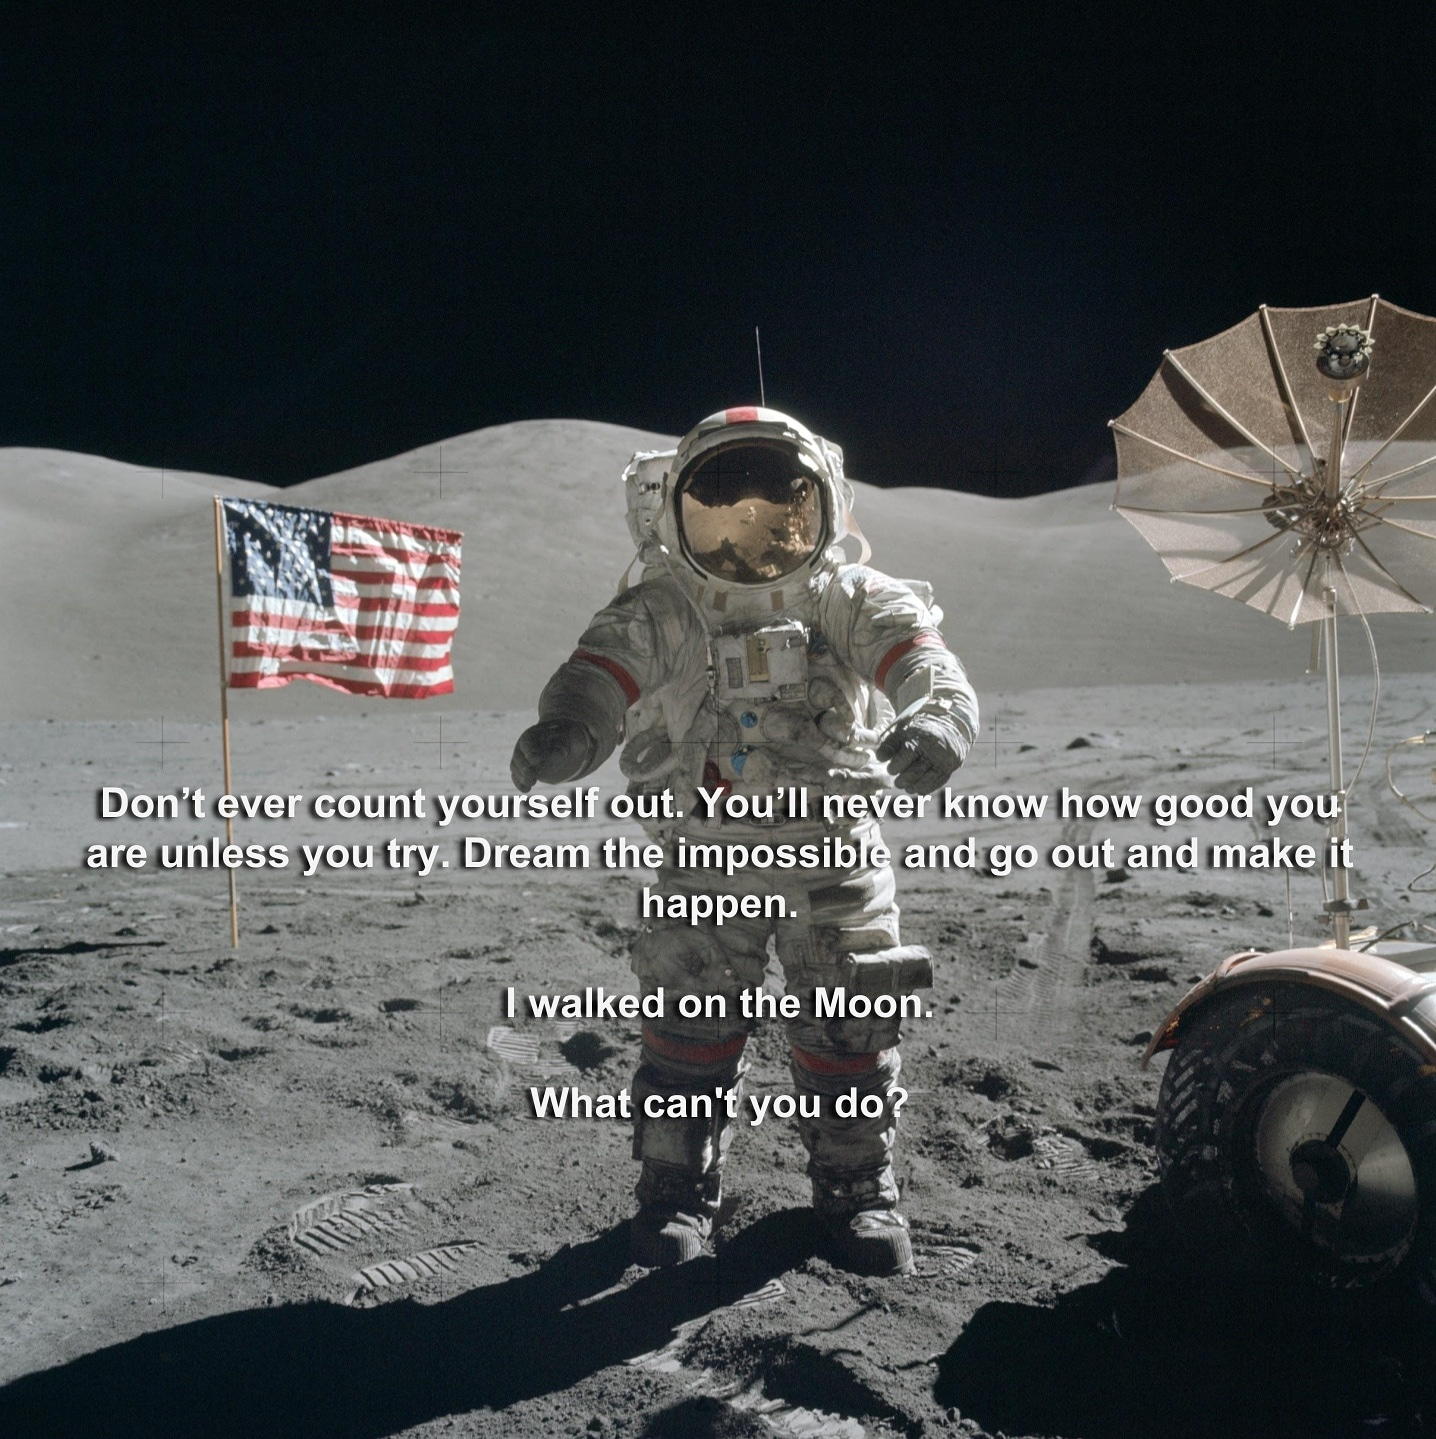 [image] From Gene Cernan, the last man to walk on the Moon.